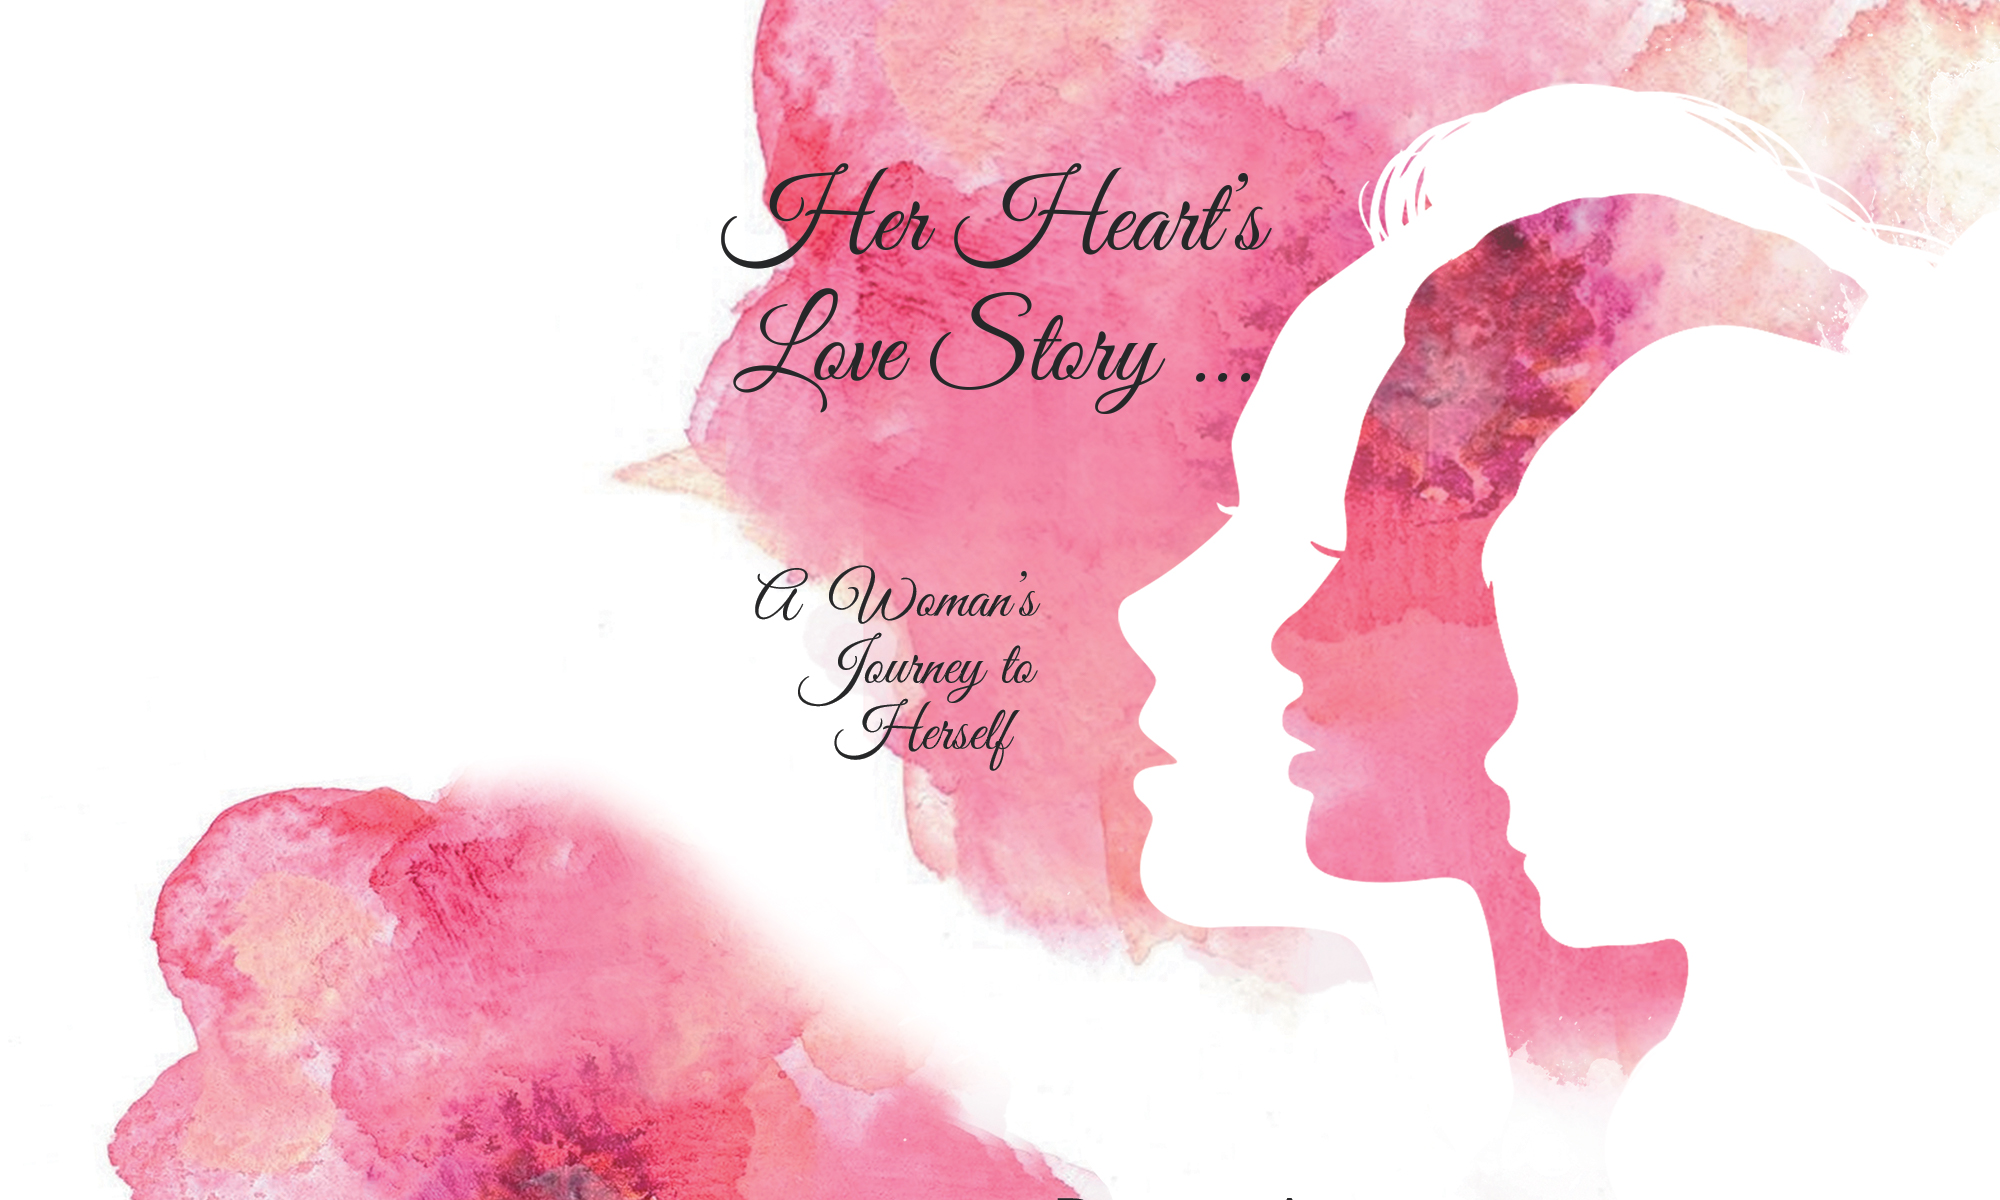 Her Heart's Love Story ...